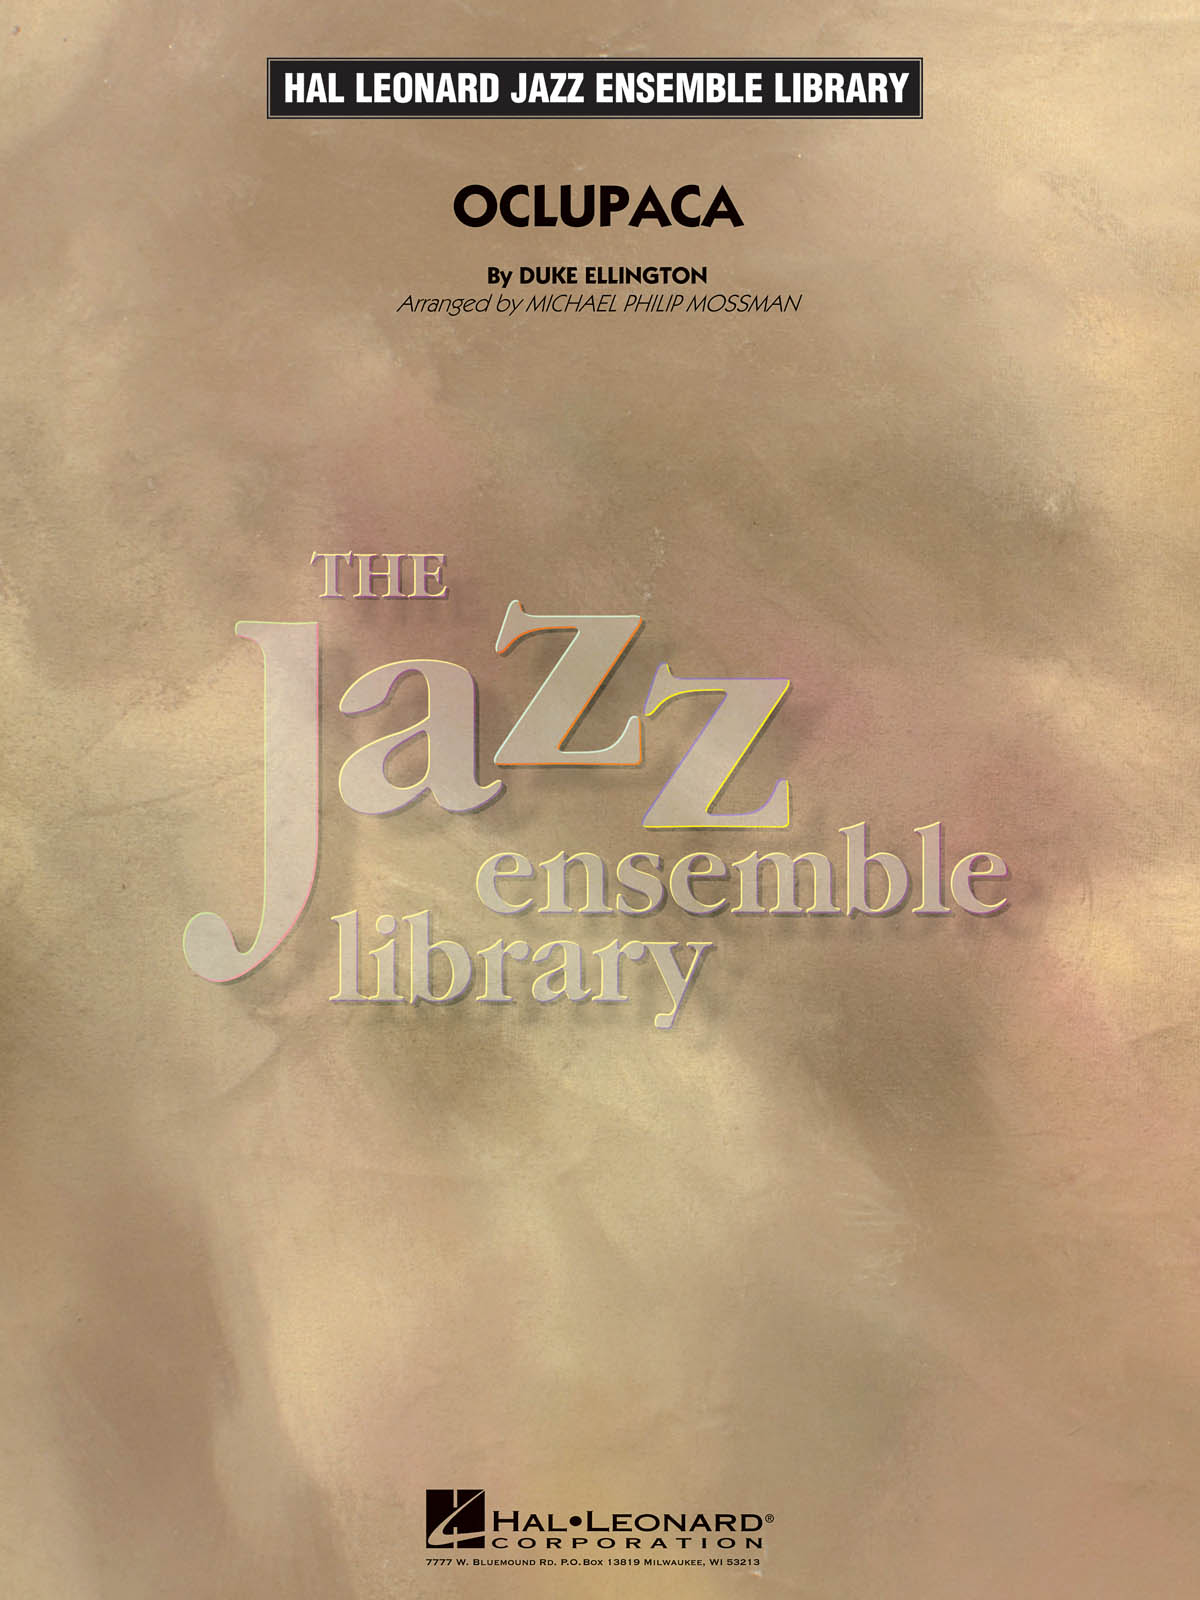 Oclupaca: The Jazz Ensemble Library